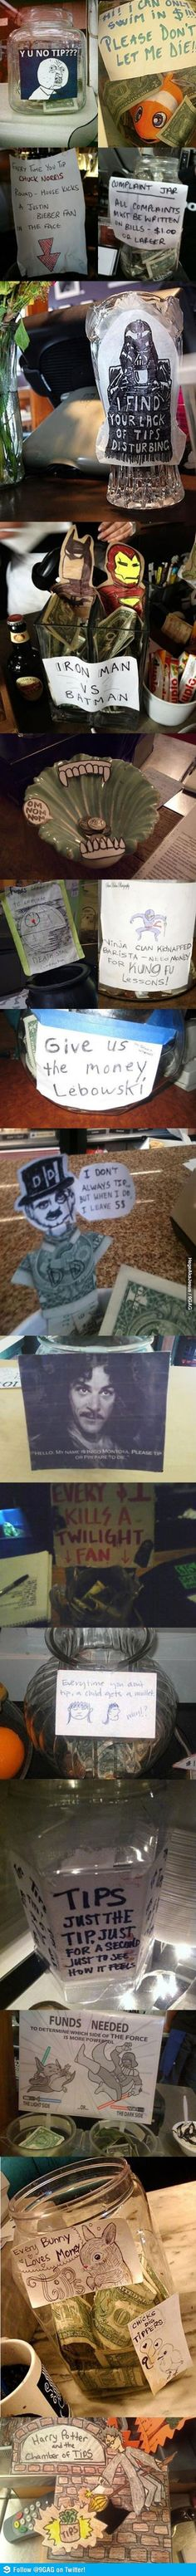 funny and creative tip jars ideas. Some of these are awesome. I love the Batman vrs Iron Man one!